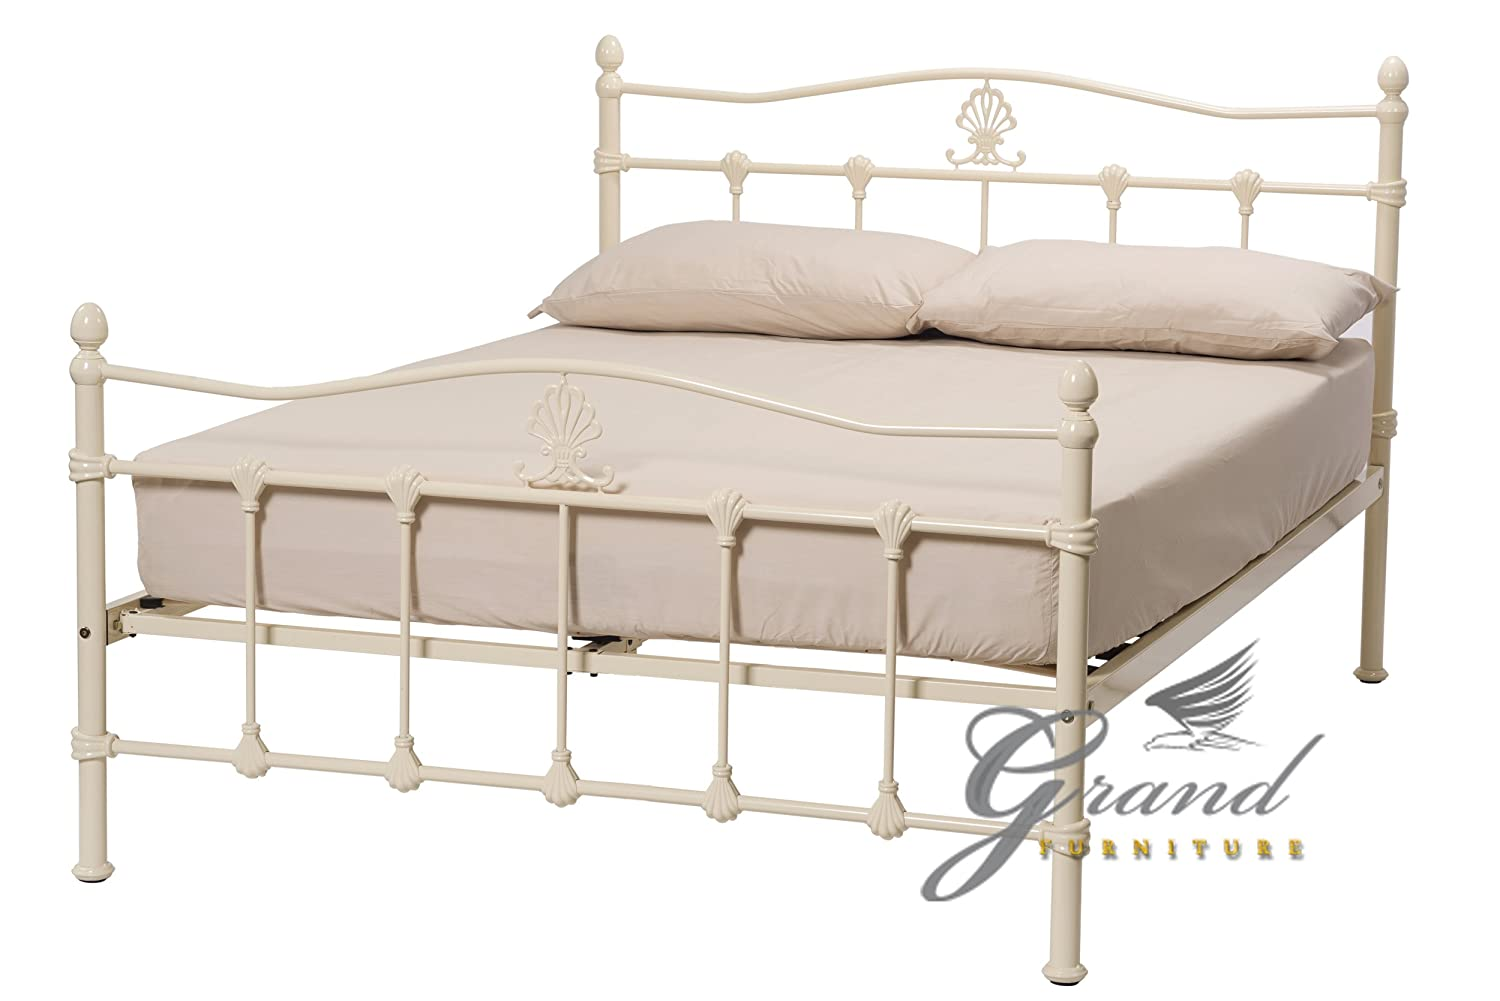 cosatto tubular double laser letti handmade headboard bed cut classic s beds furniture iron by wrought italian concerto metal for bedroom